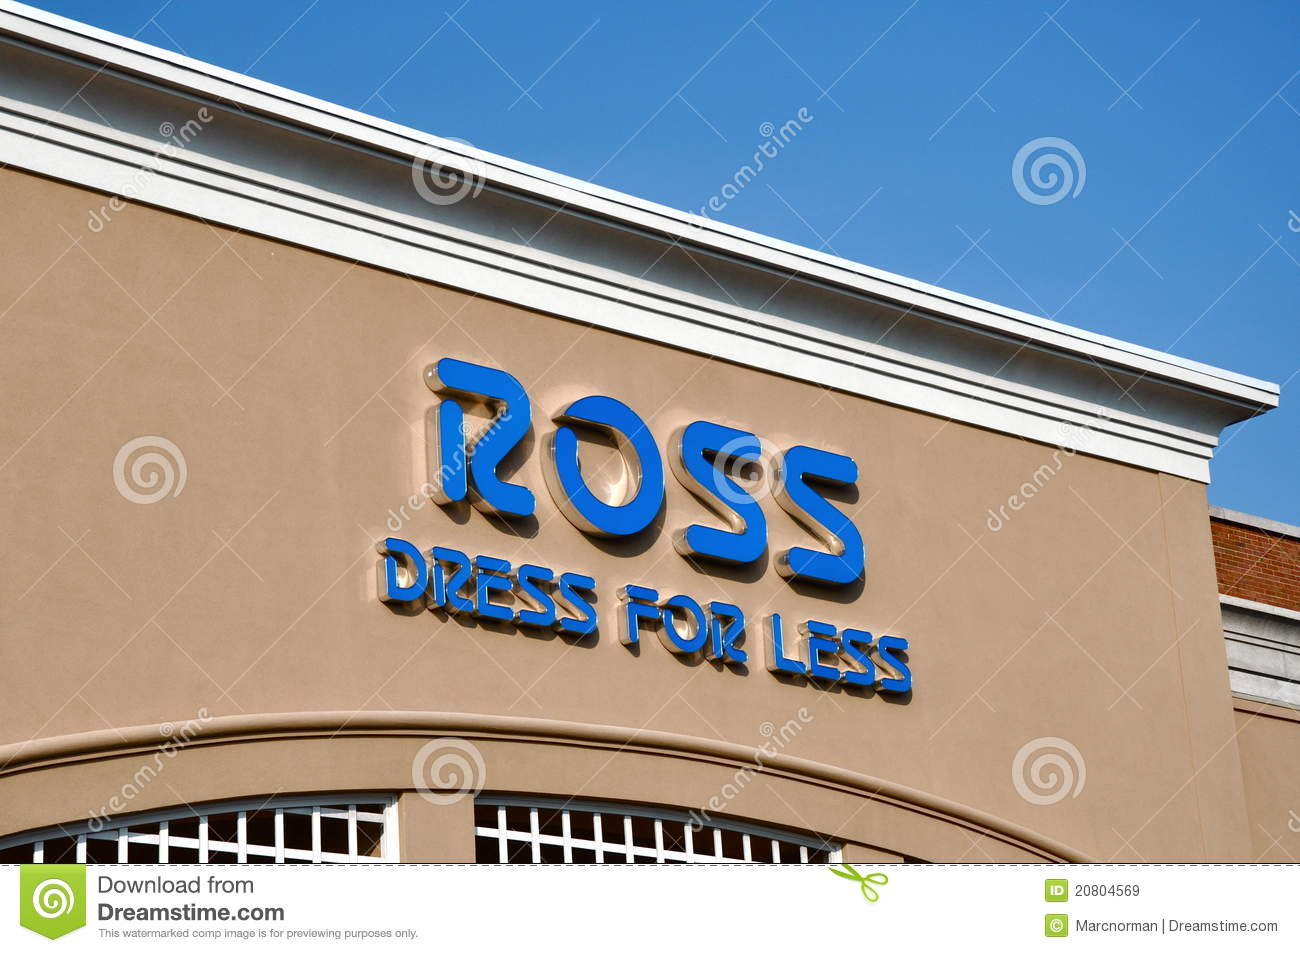 fd061295a Falls Church, VA, USA - August 19, 2011: Ross Dress for Less sign. Ross  Stores, Inc. (NASDAQ: ROST) is a chain of American off-price department  stores ...